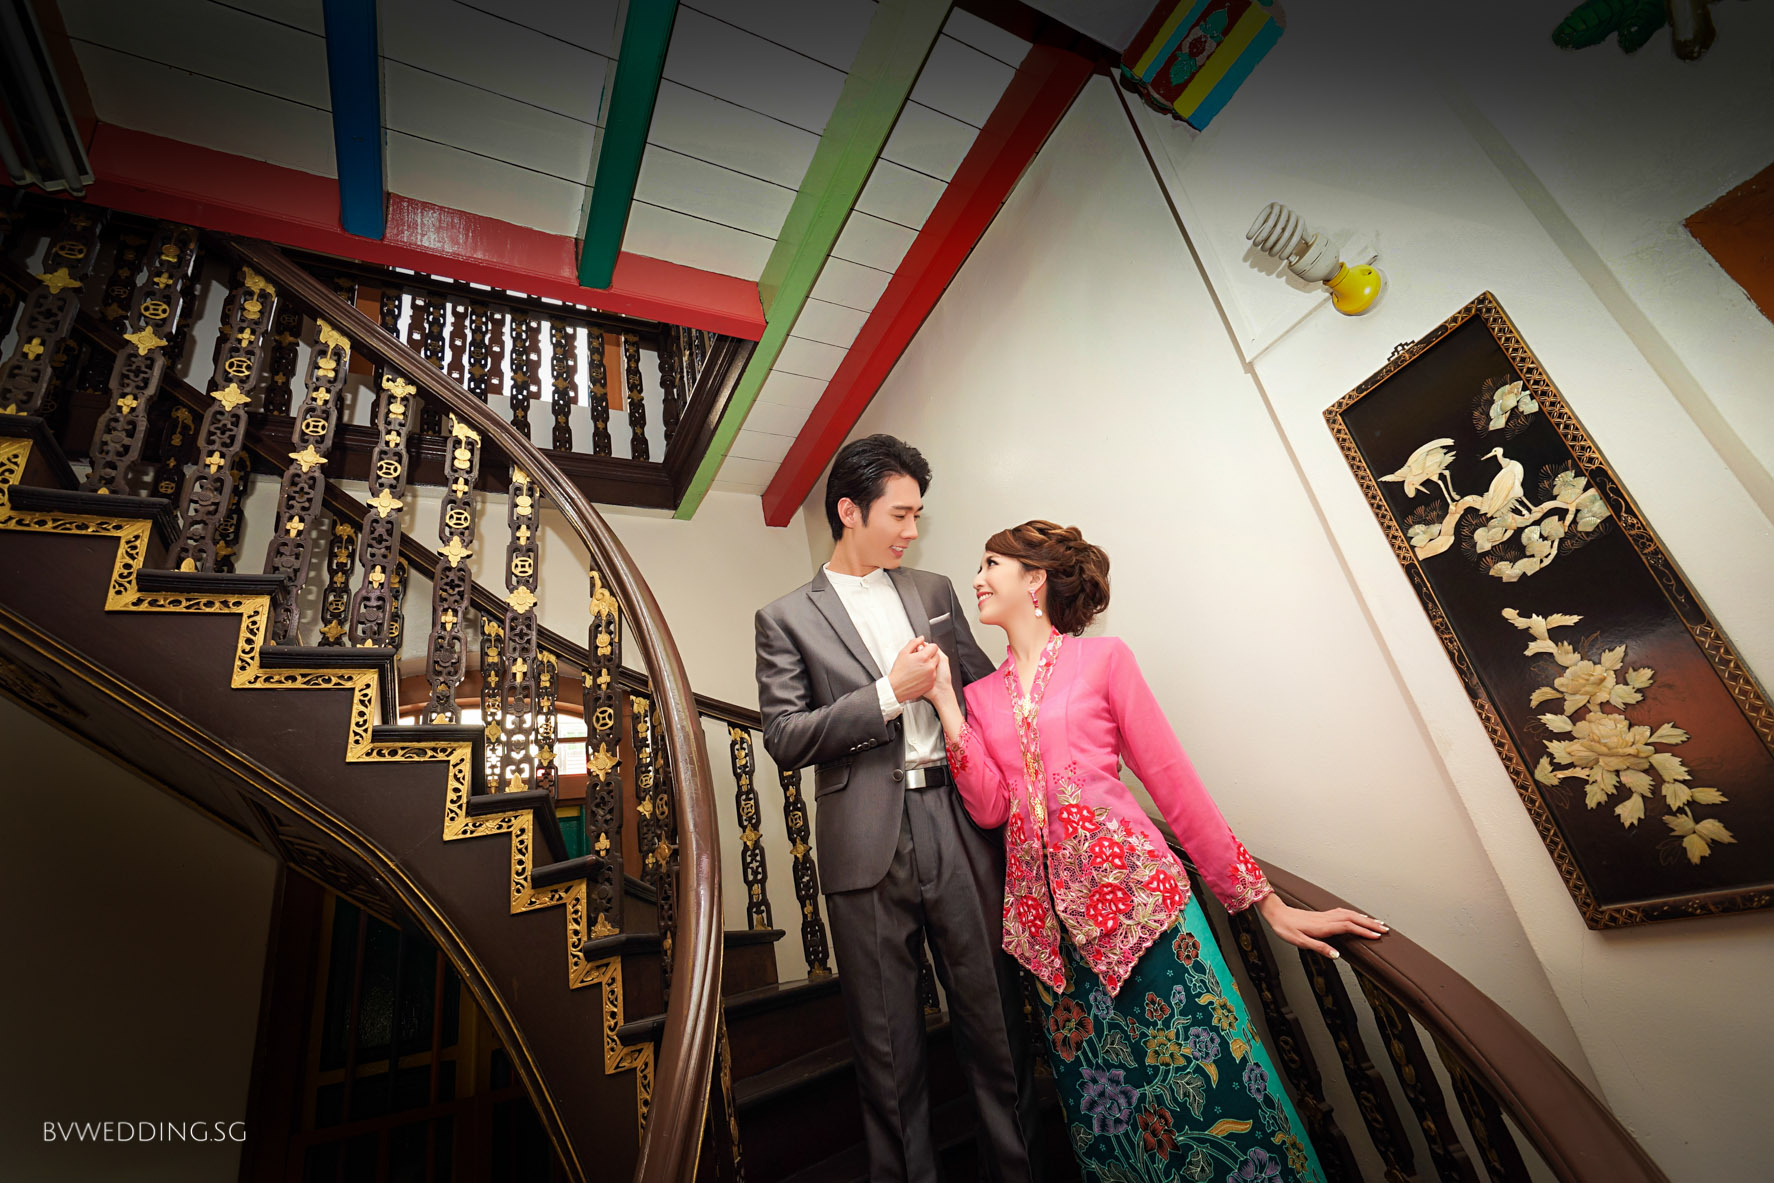 Singapore Peranakan Style Pre-wedding Photoshoot at Indian Heritage Center